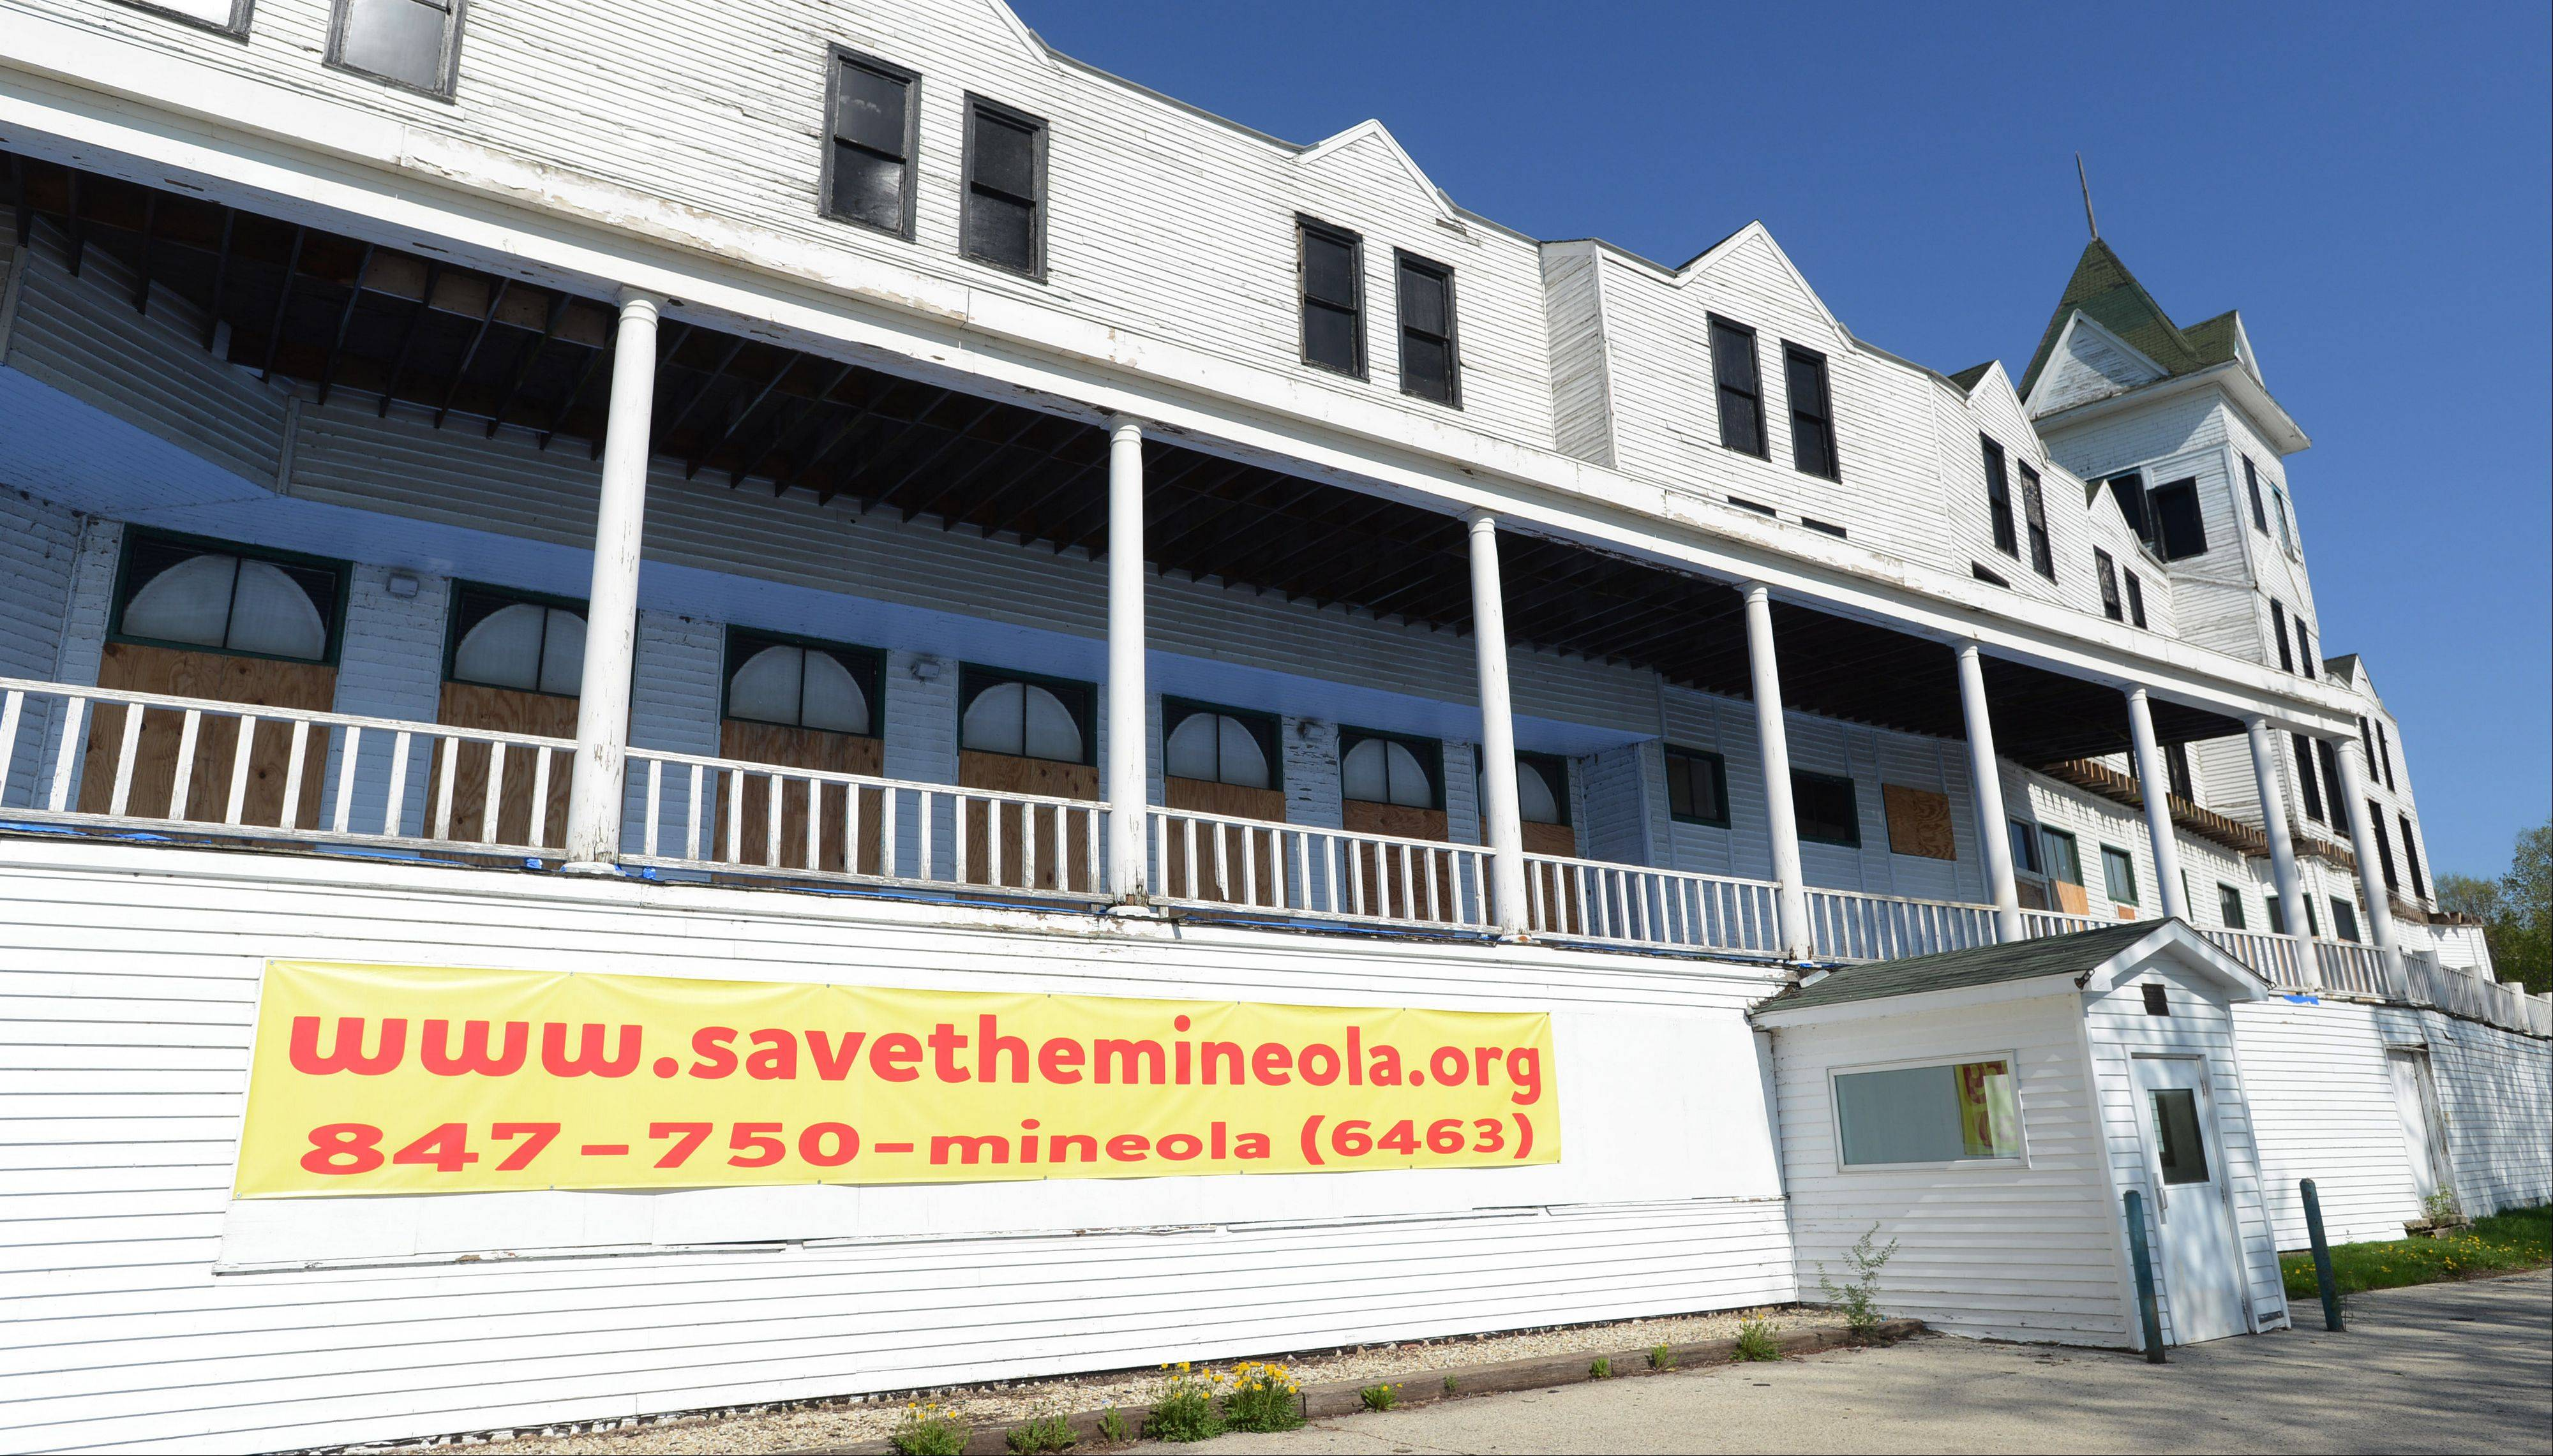 Will designation as one of the most endangered historic structures help the Mineola?